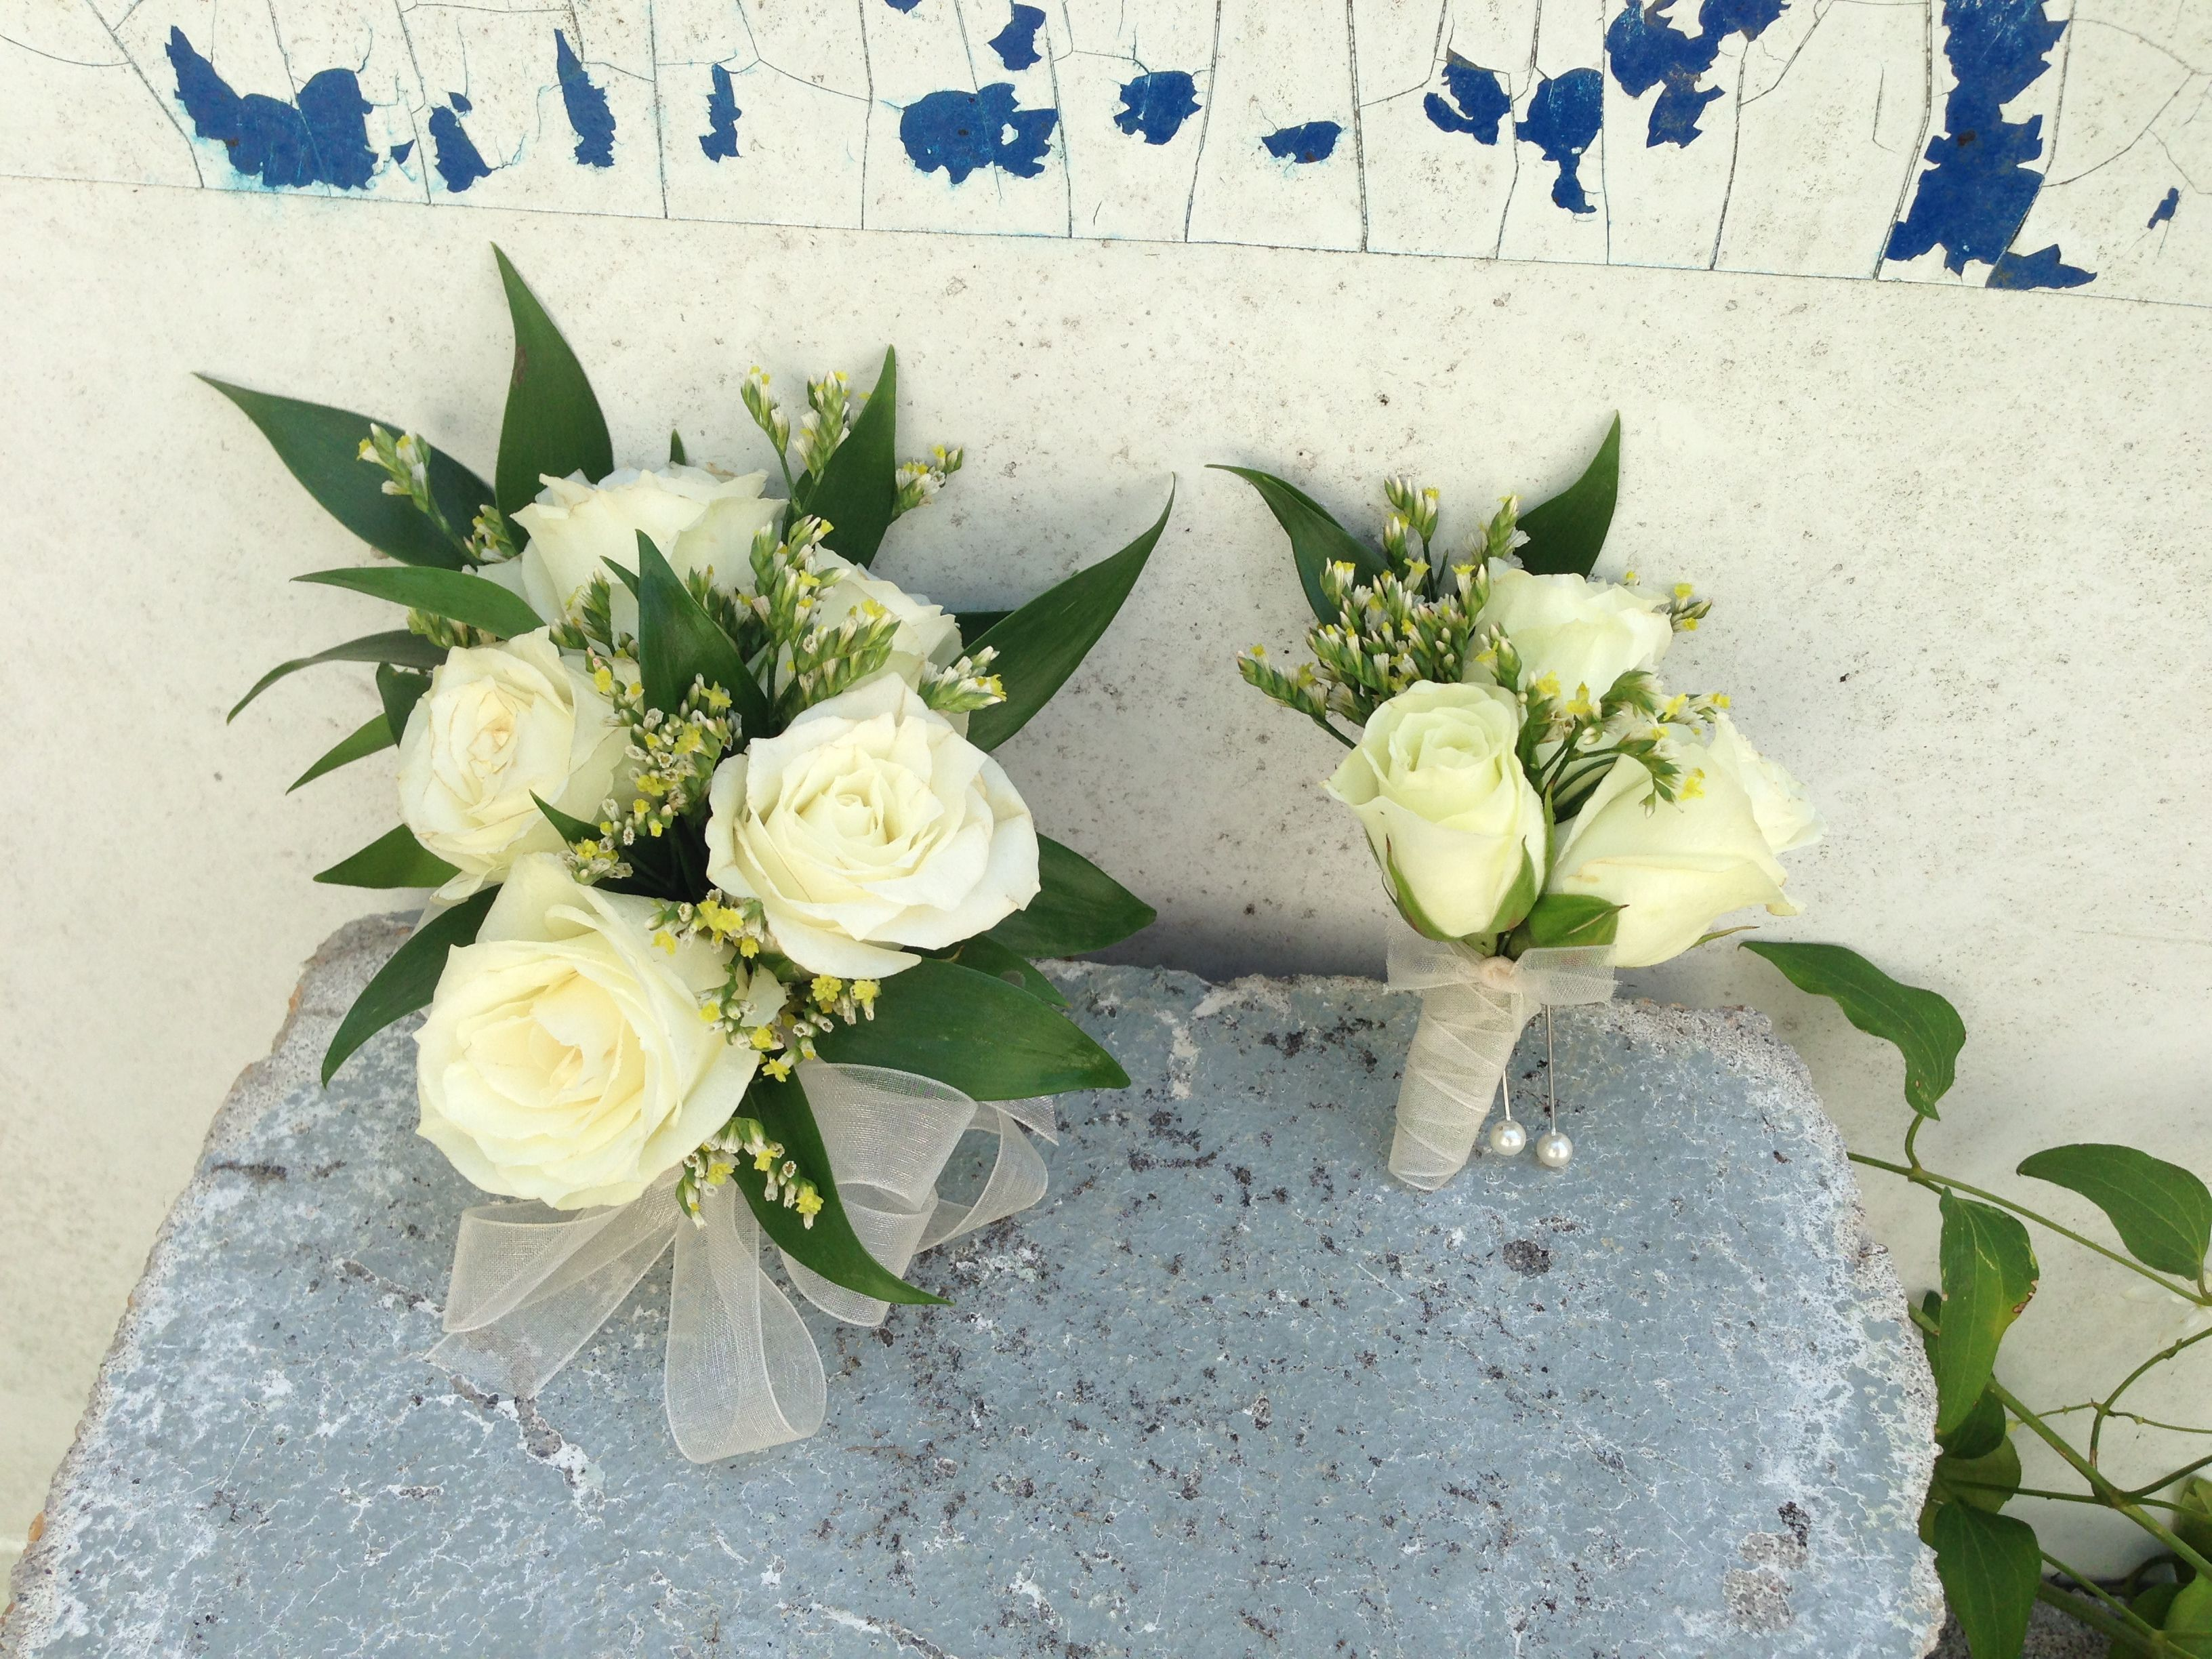 White Spray Rose Corsage and Boitonniére | Kassi | PinterestWhite Spray Rose Boutonniere